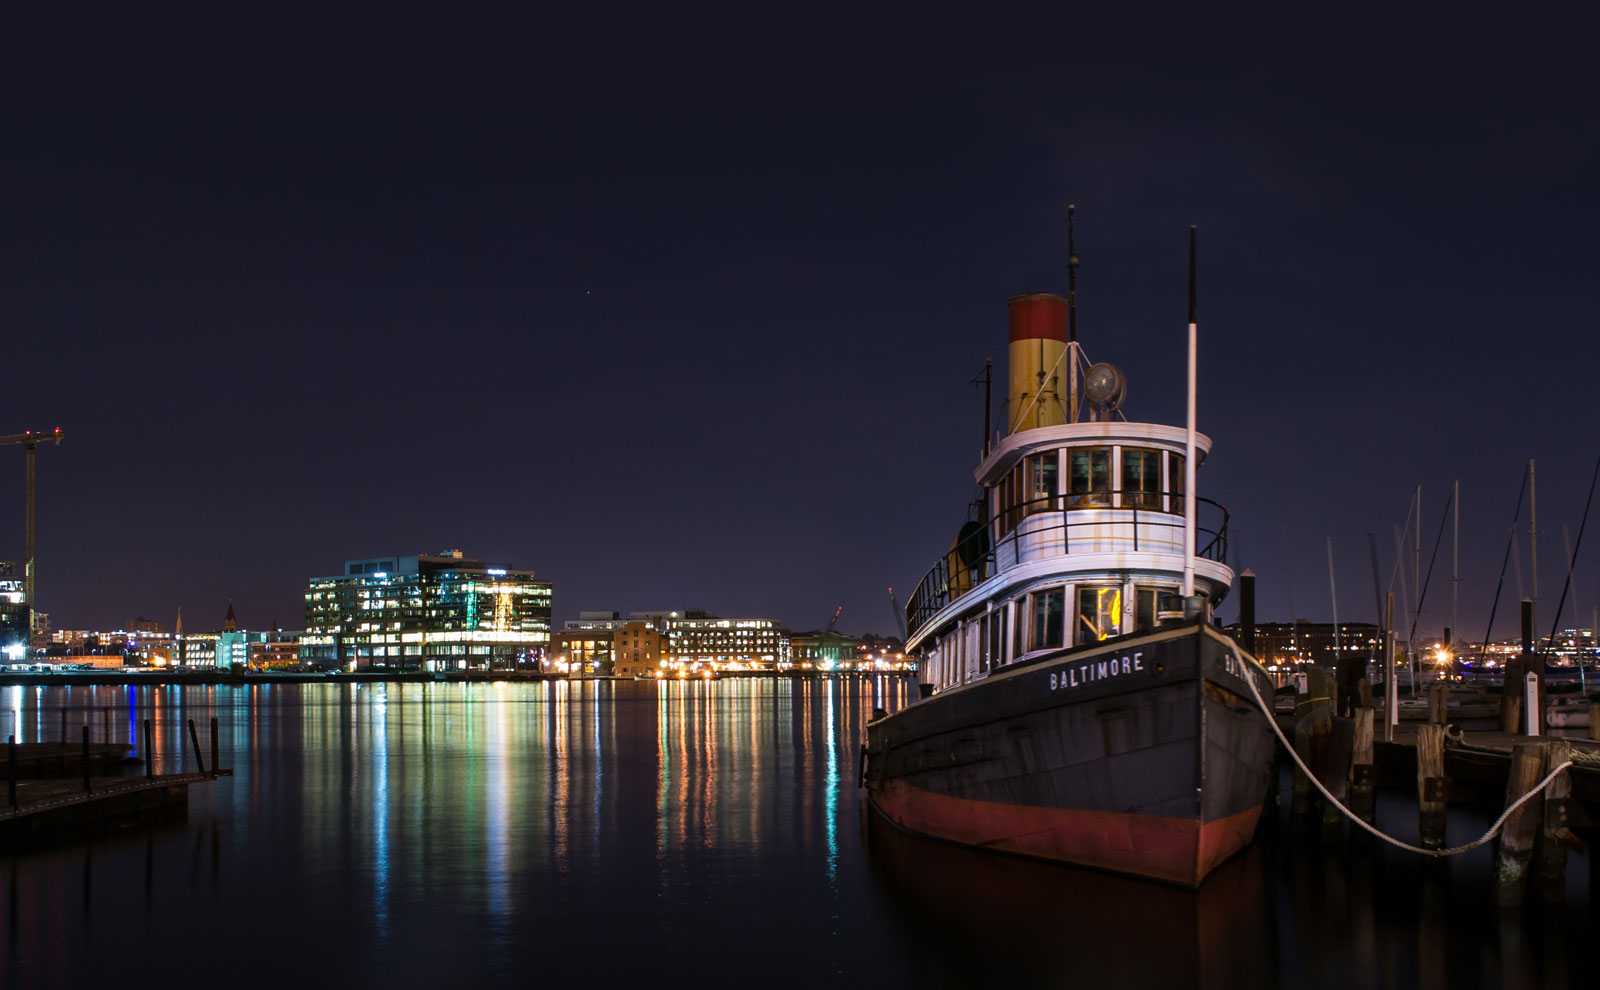 Boat in Baltimore Harbor